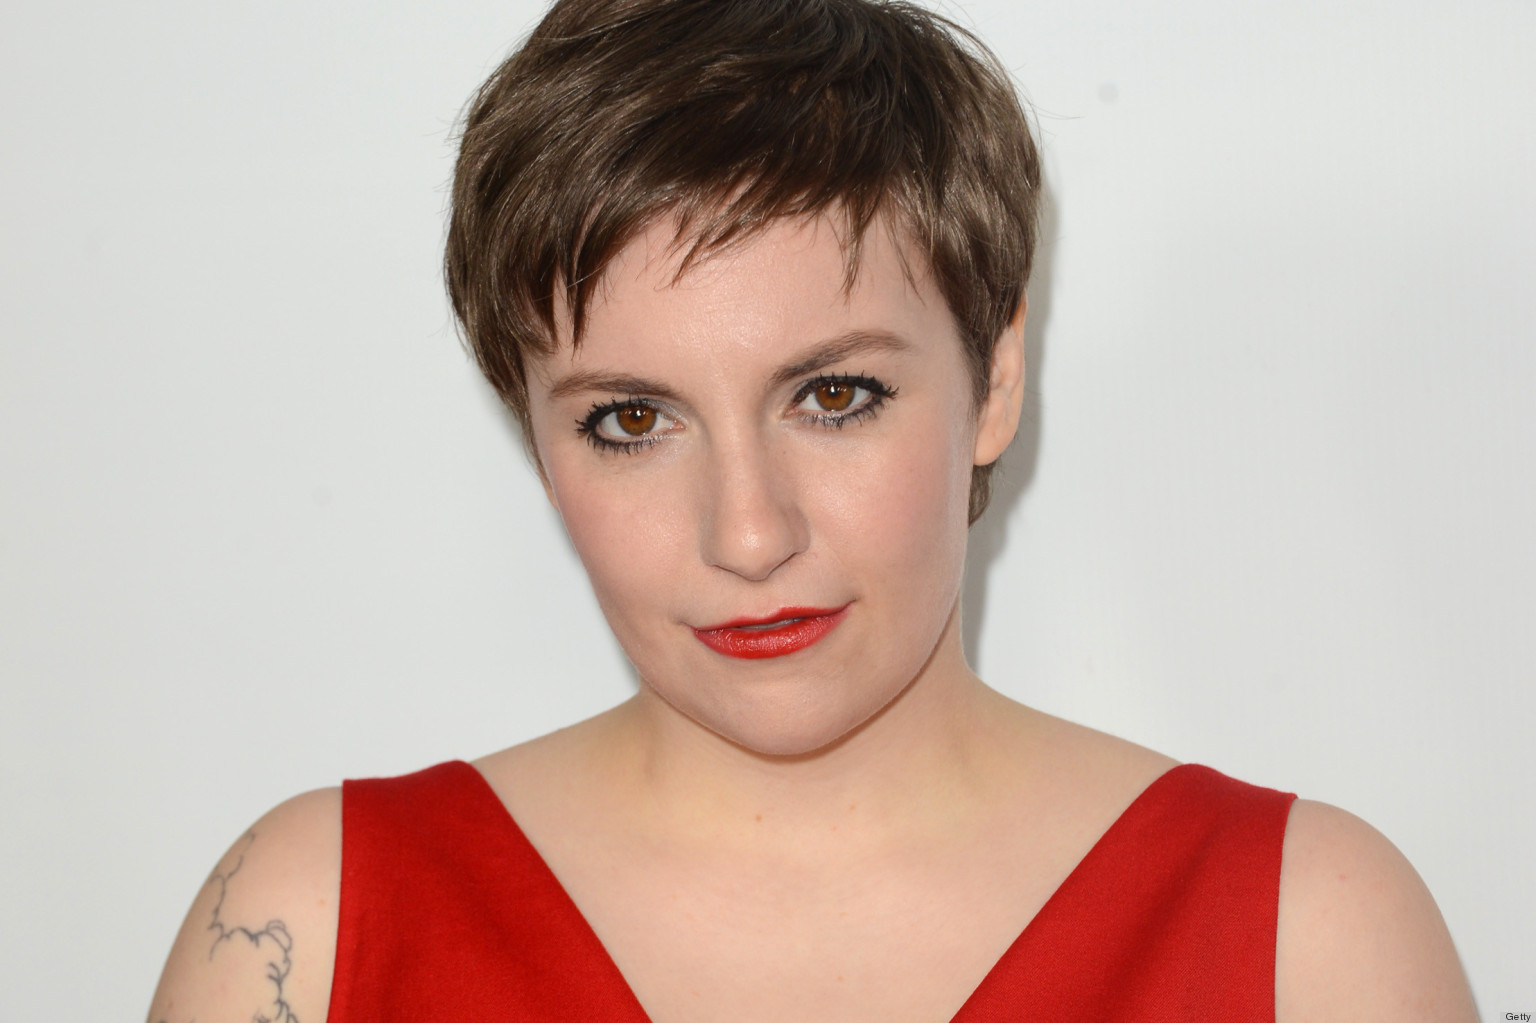 "HOLLYWOOD, CA - DECEMBER 12: Actress Lena Dunham attends the premiere Of Universal Pictures' ""This Is 40"" at Grauman's Chinese Theatre on December 12, 2012 in Hollywood, California. (Photo by Jason Merritt/Getty Images)"